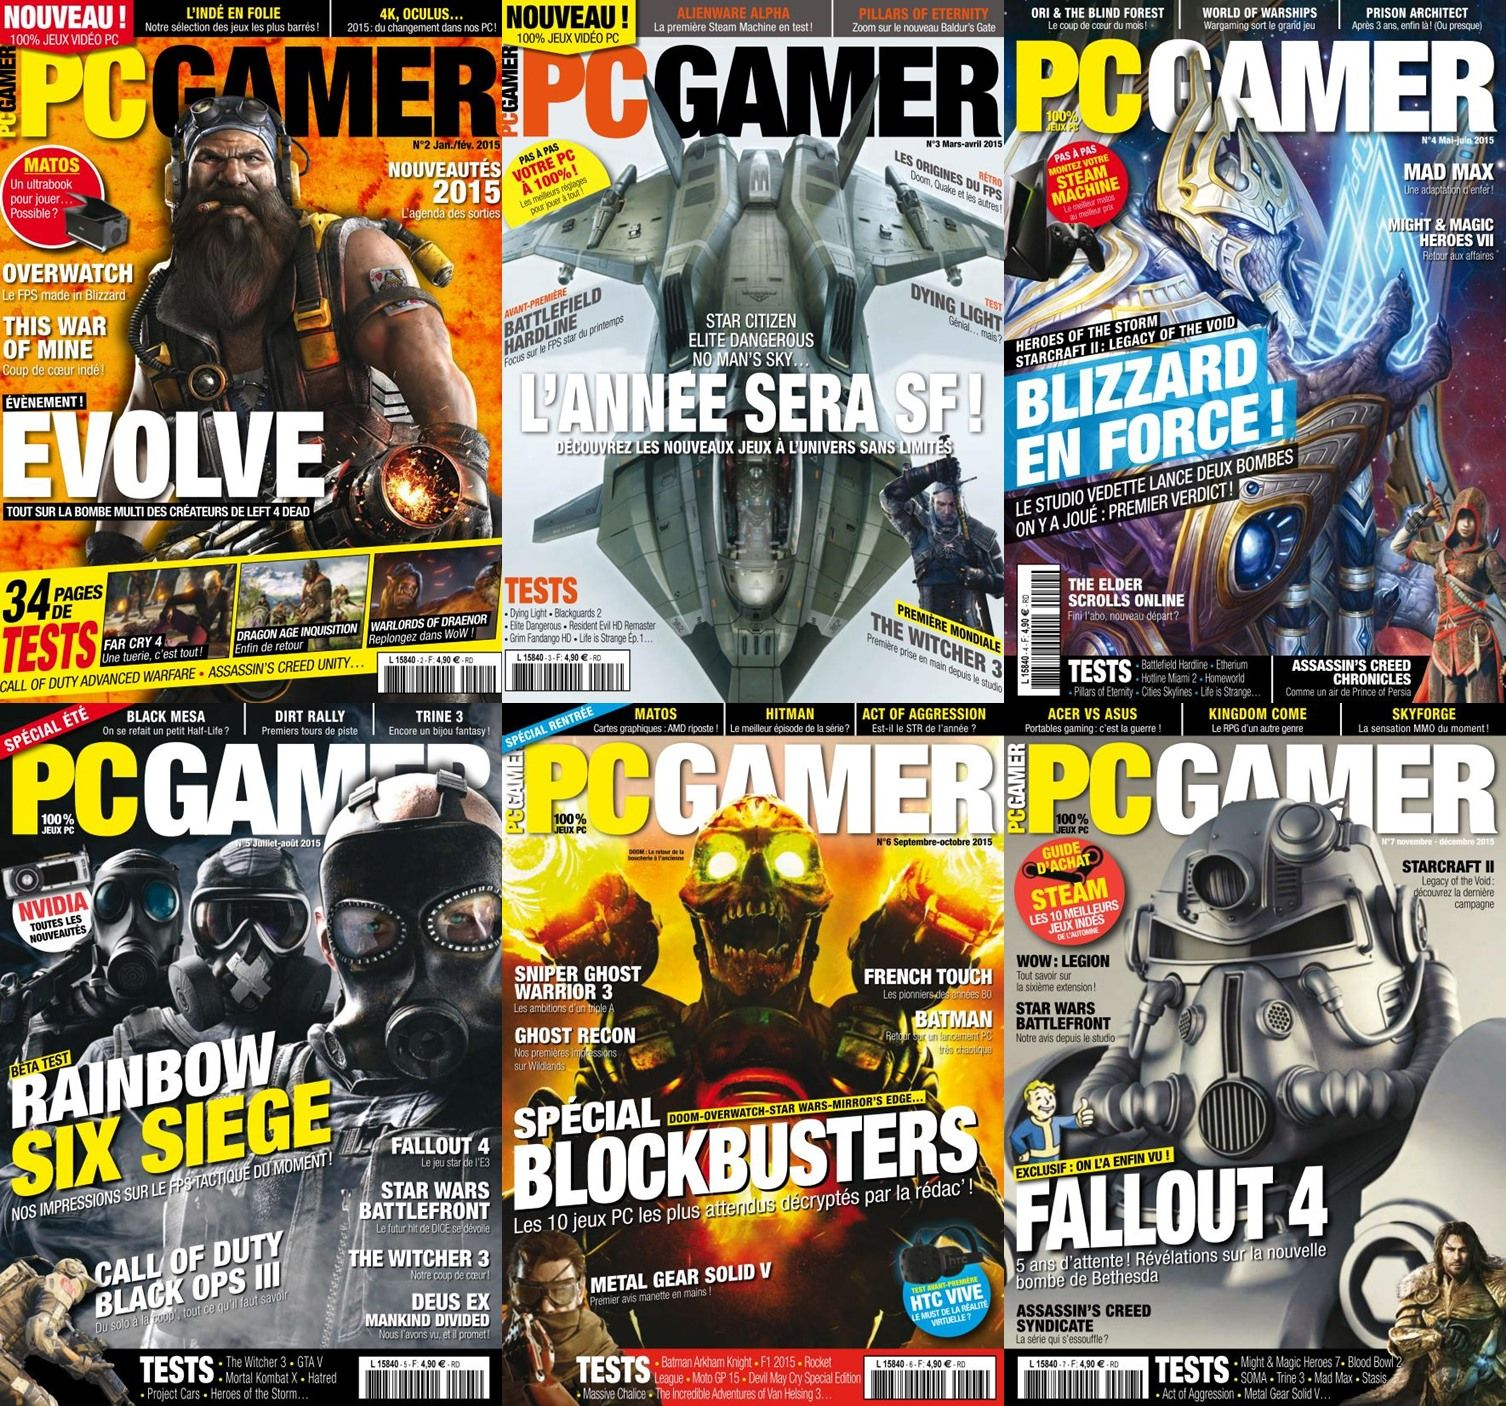 PC Gamer - 2015 Full Year Issues Collection